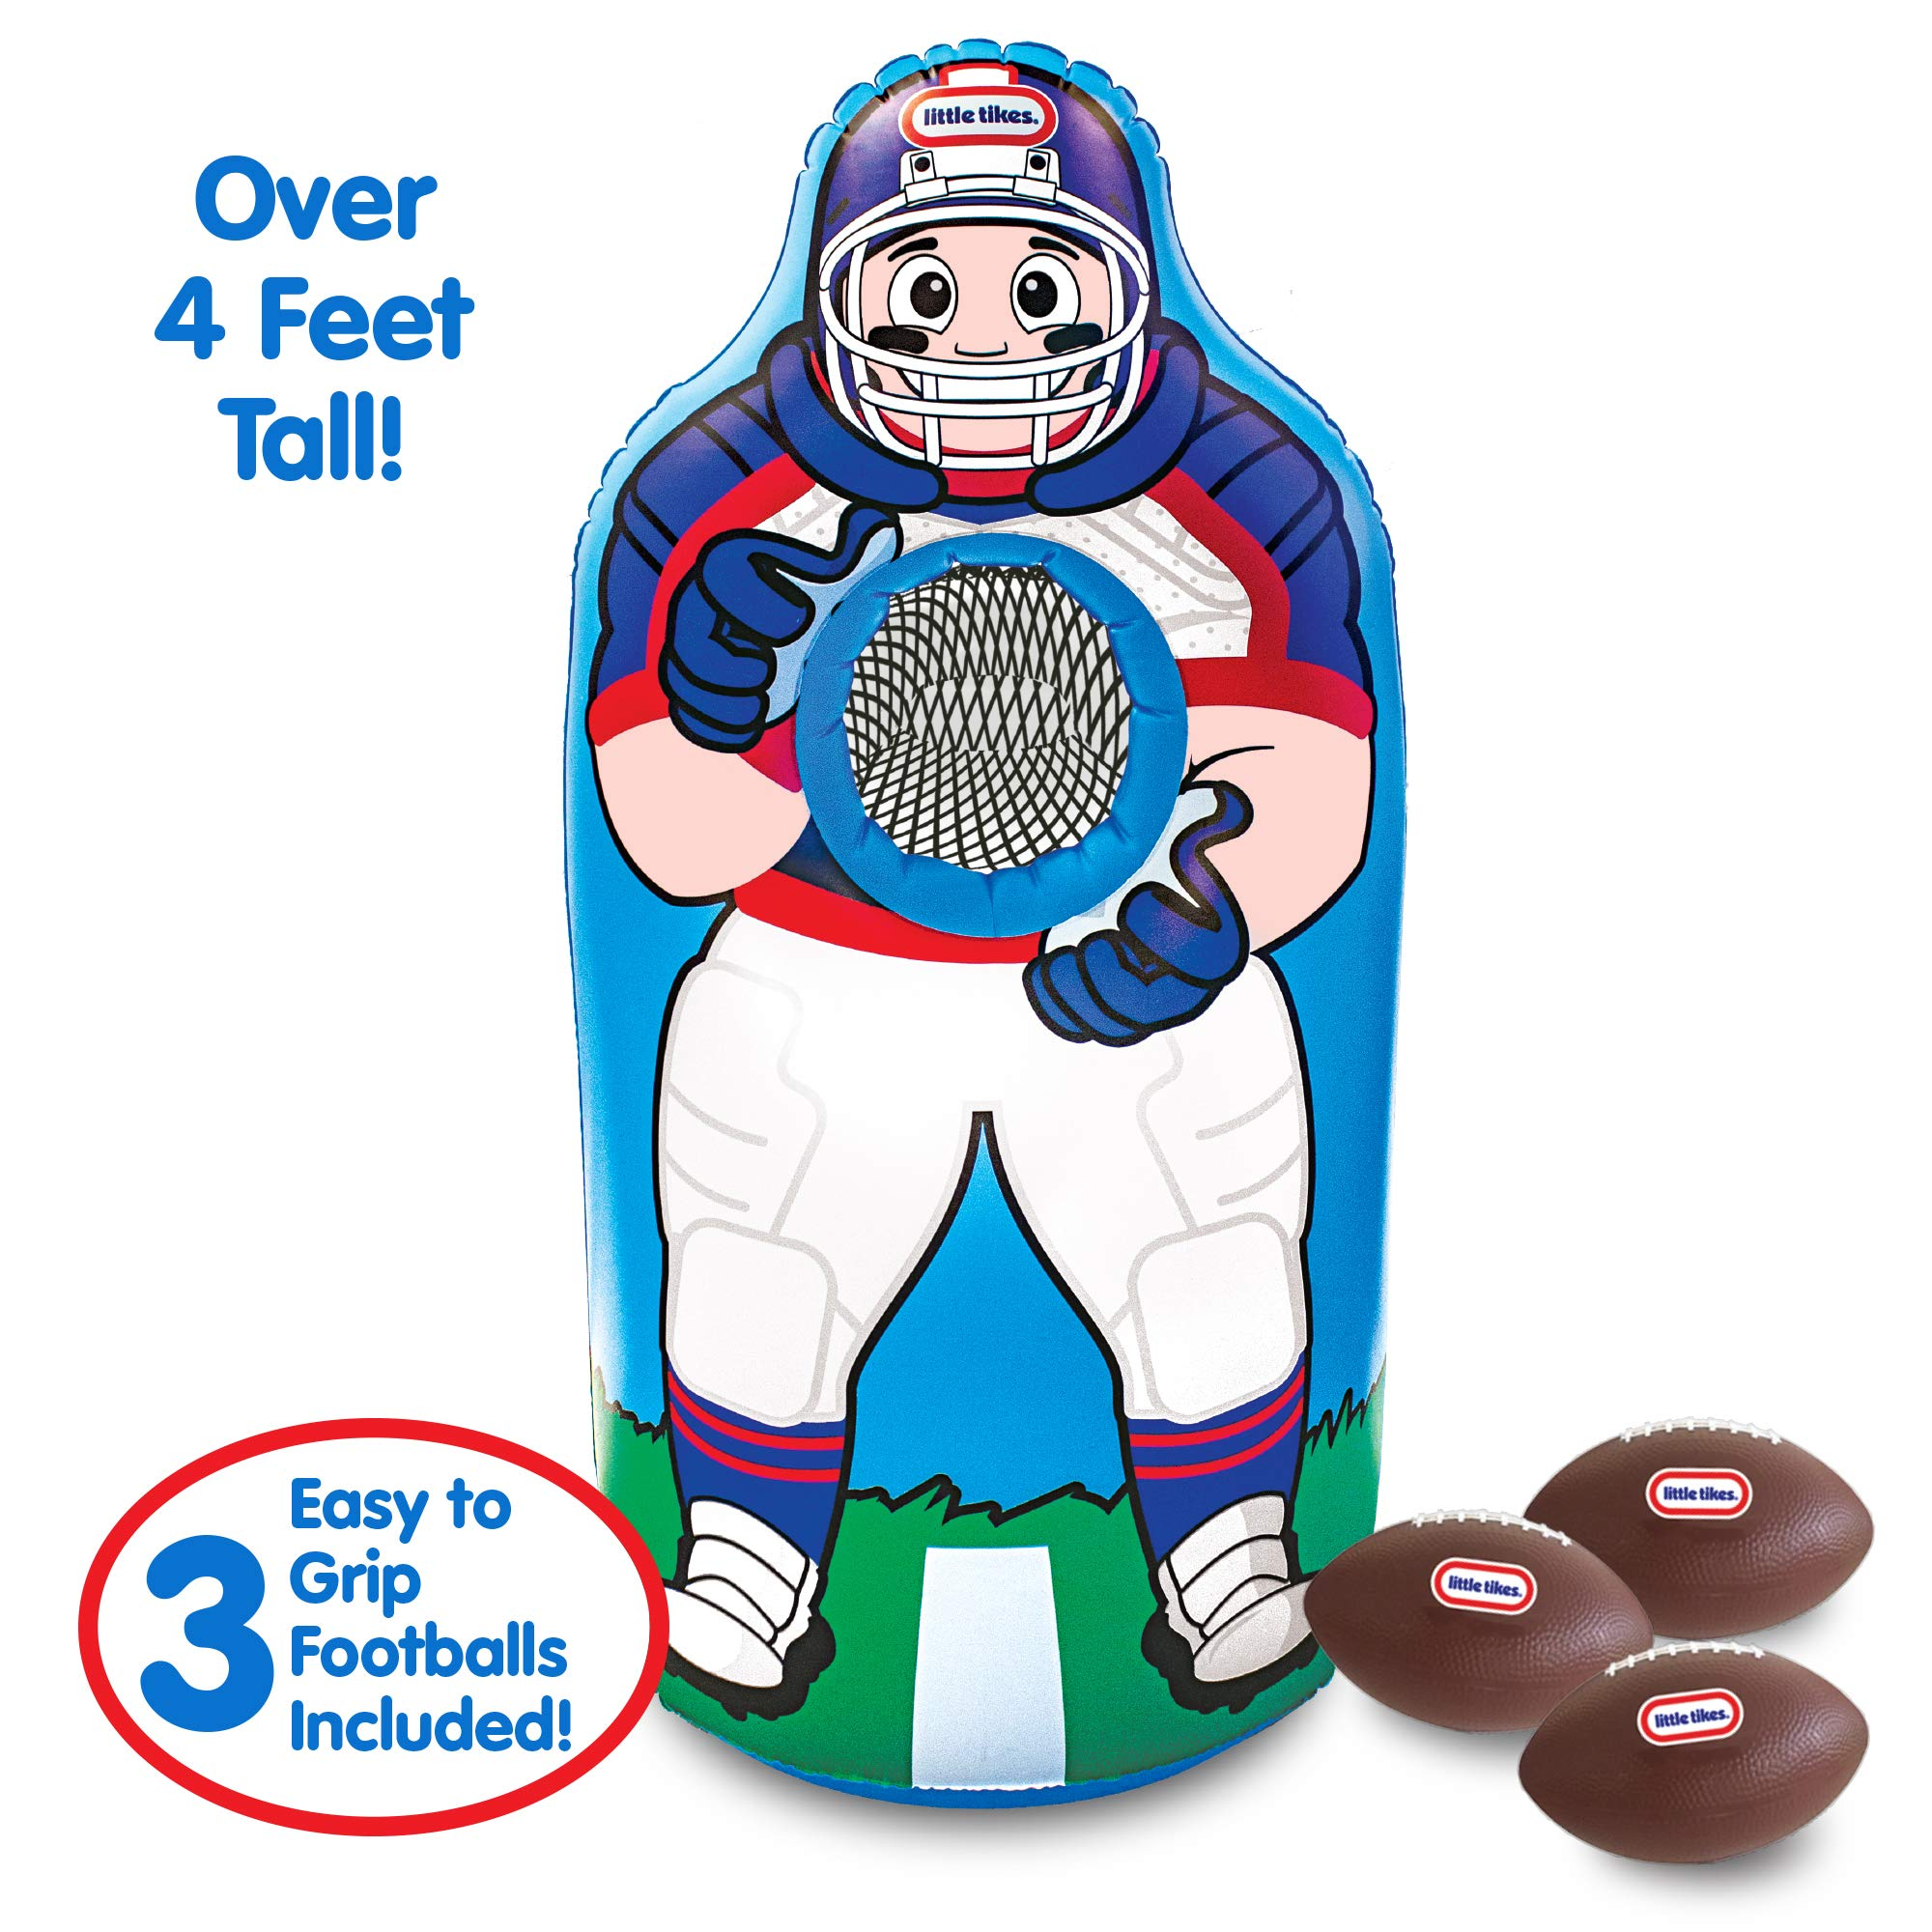 Little Tikes Inflatable Football Trainer by Little Tikes